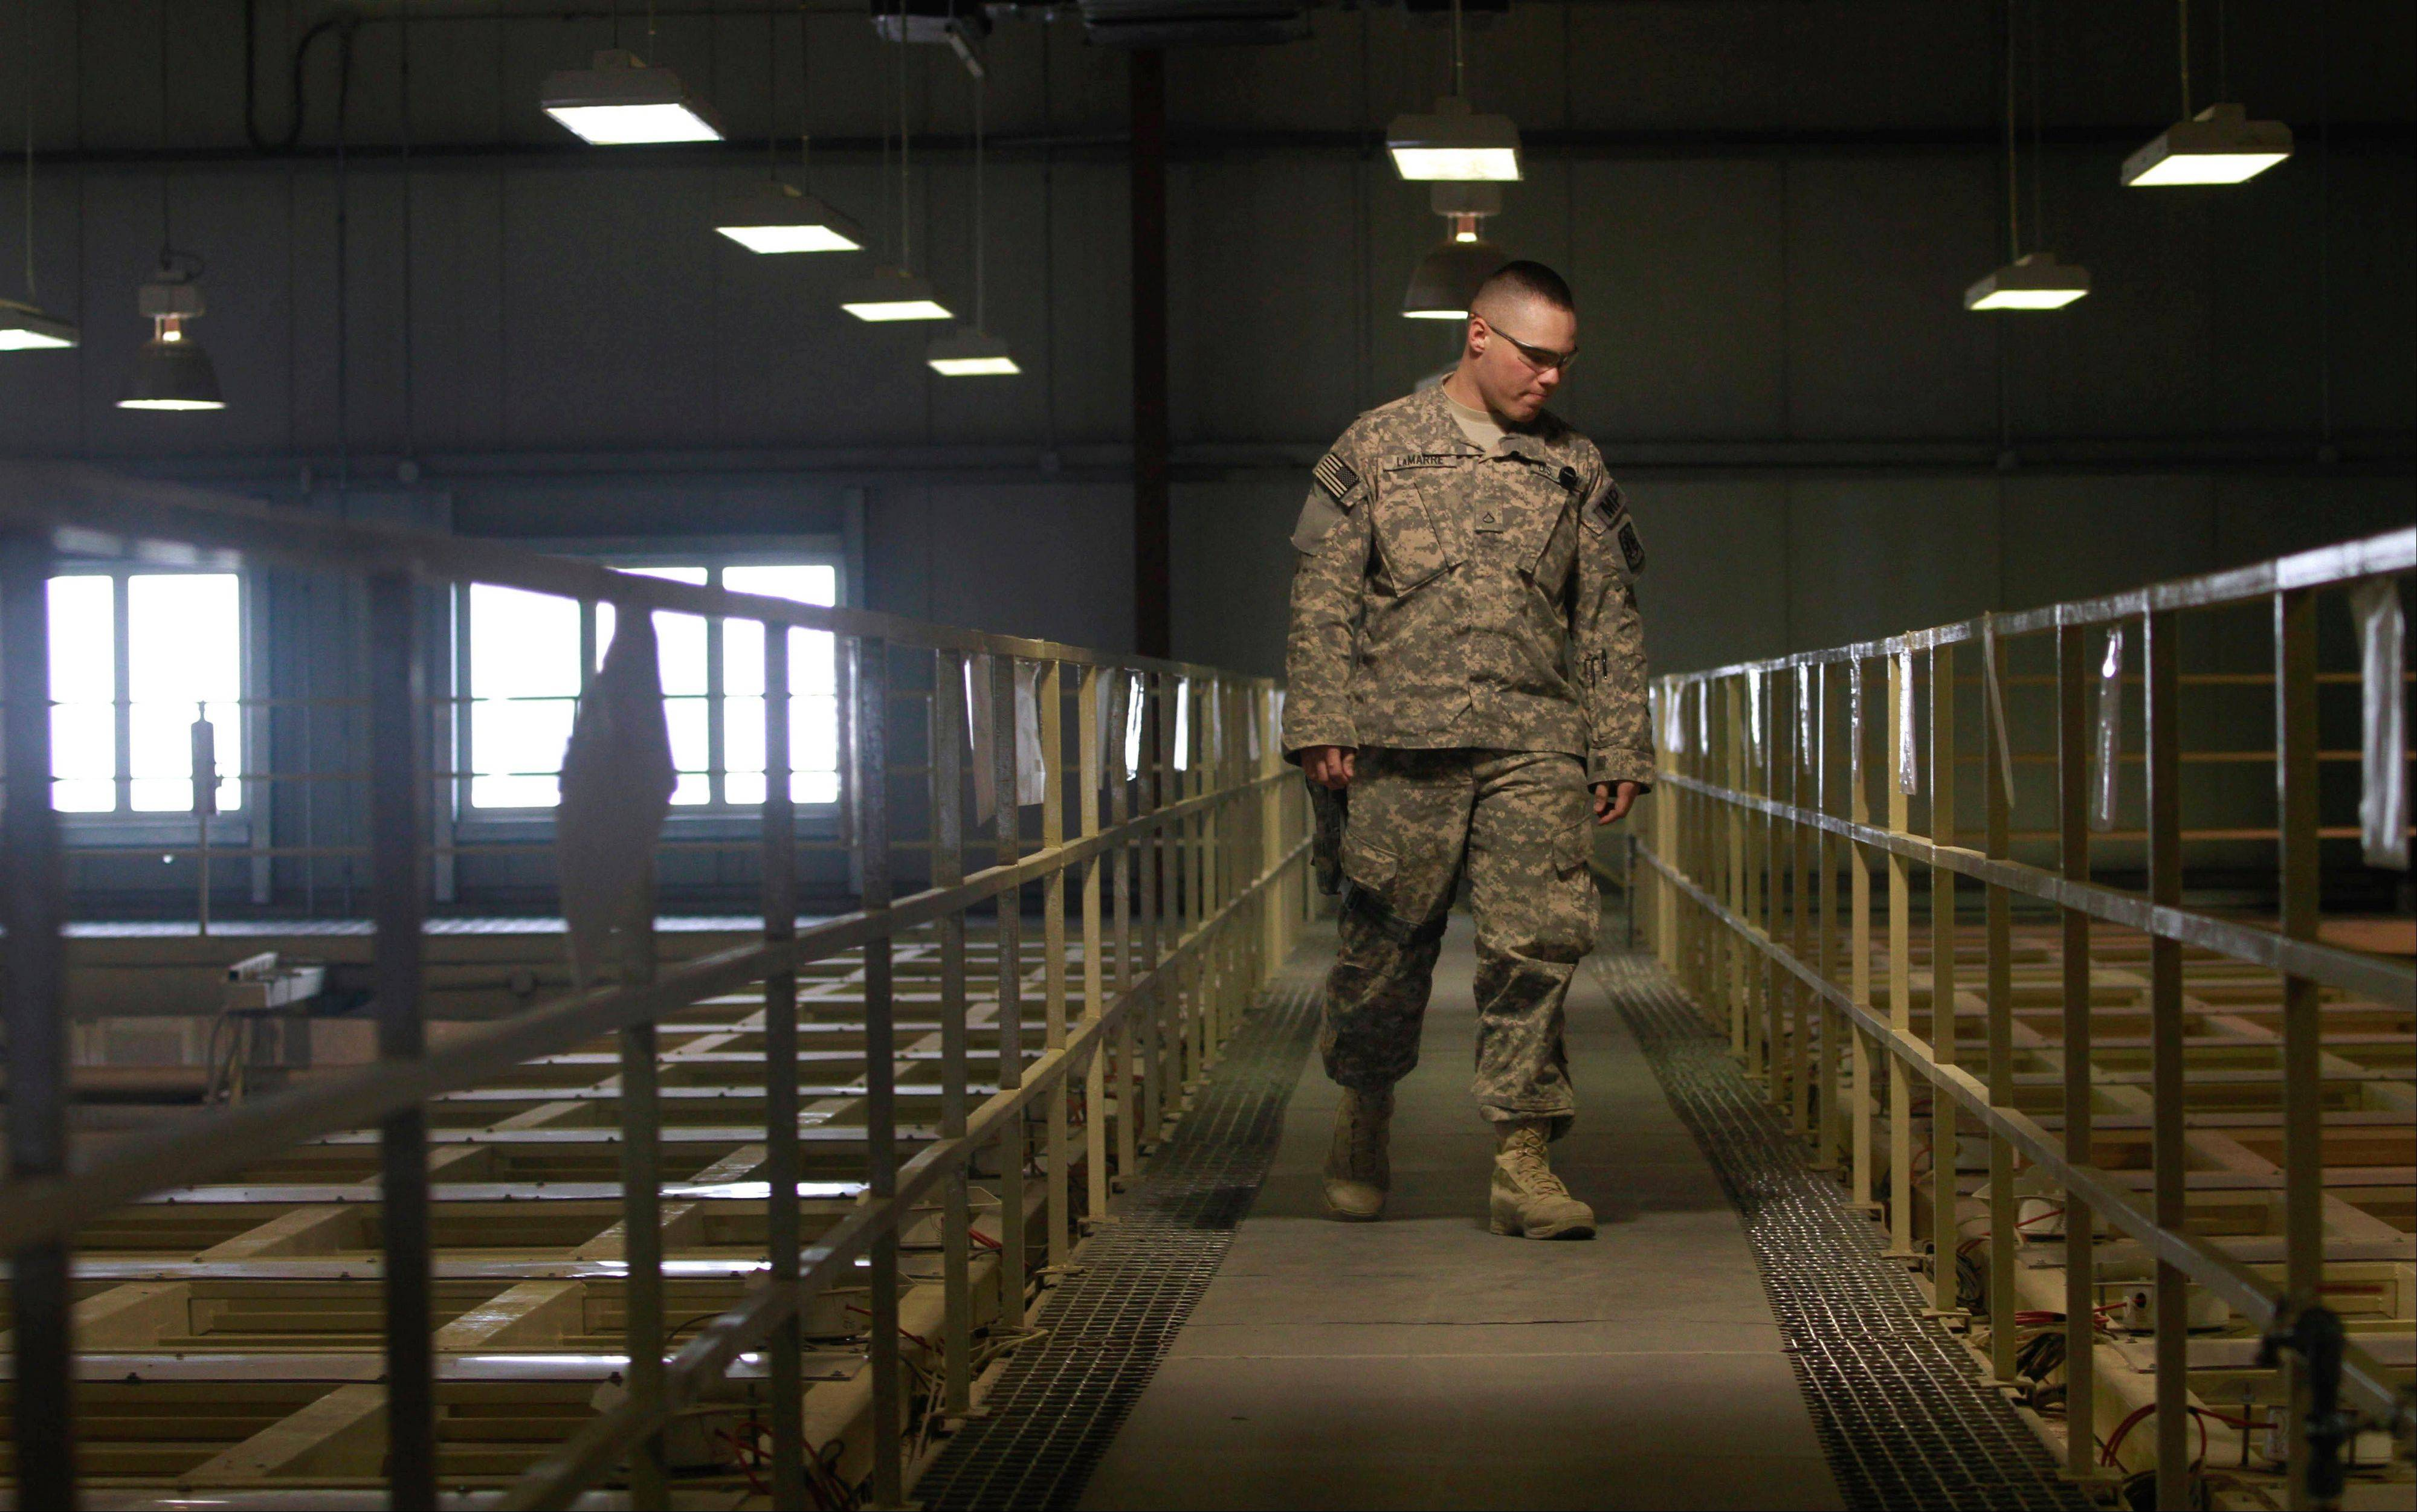 Associated Press/March 23, 2011 A U.S. military guard watches over detainee cells inside the Parwan detention facility near Bagram Air Field in Afghanistan.